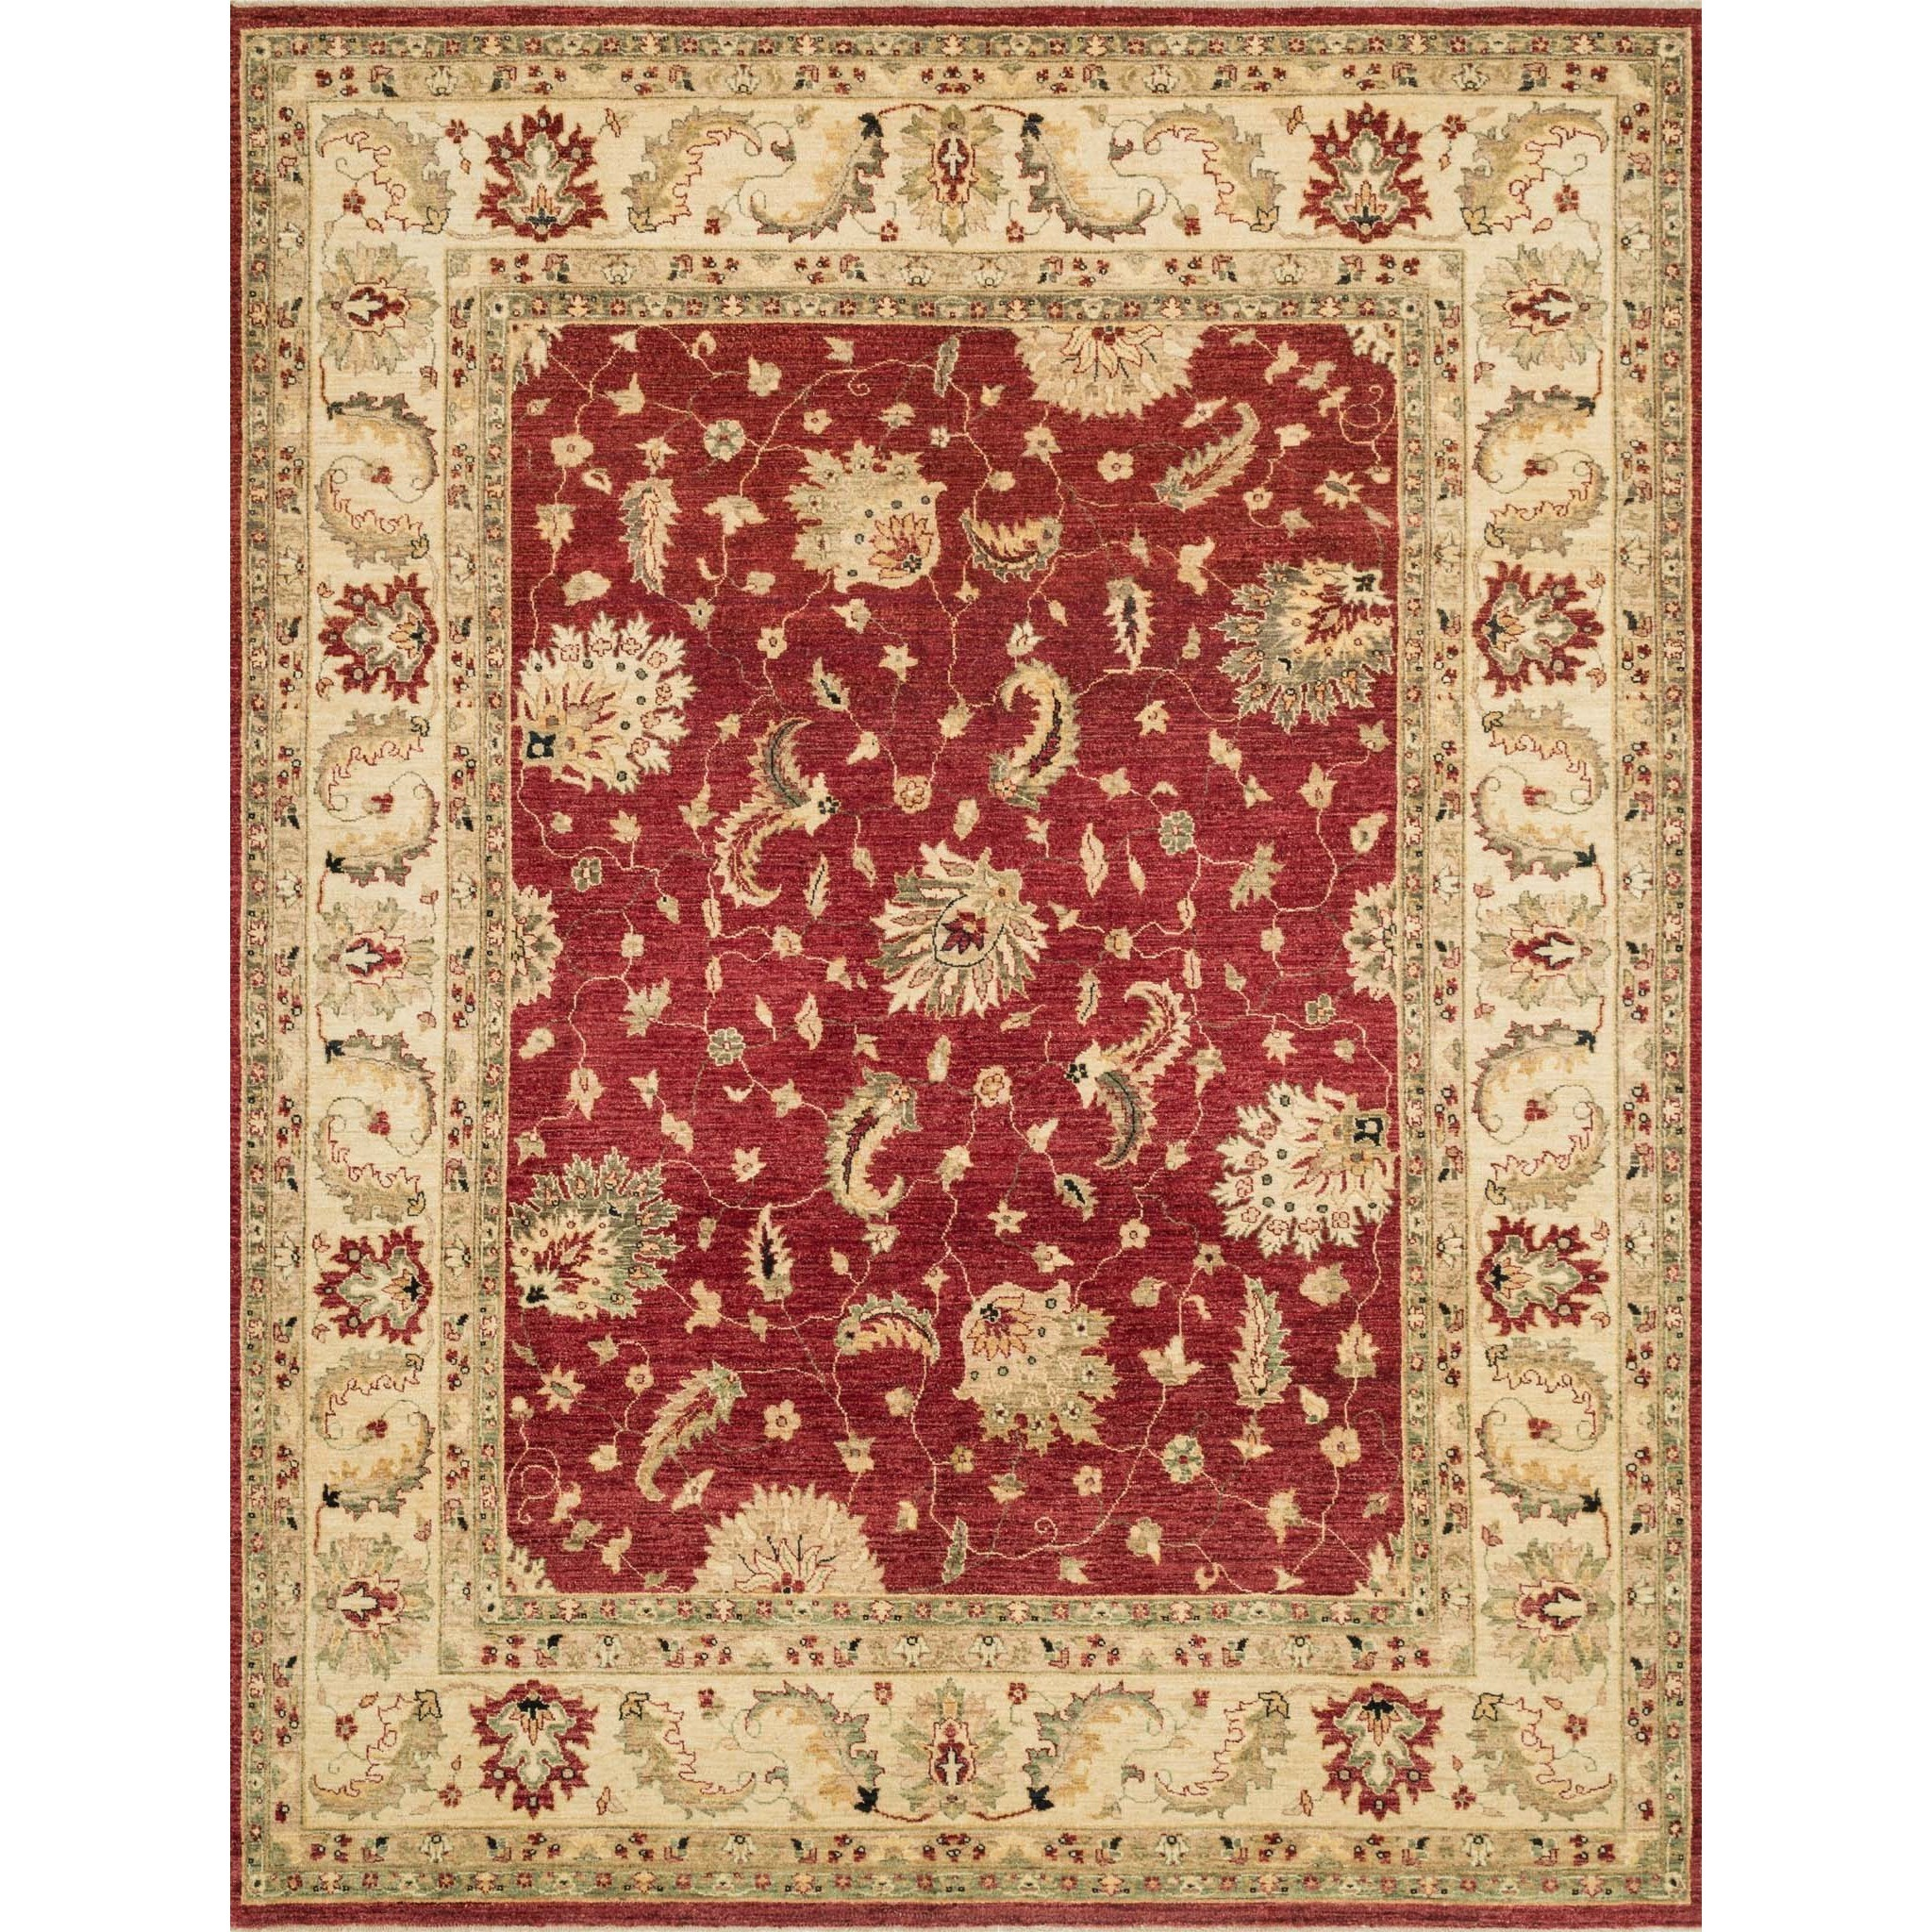 "Majestic 8'-6"" x 11'-6"" Area Rug by Loloi Rugs at Sprintz Furniture"